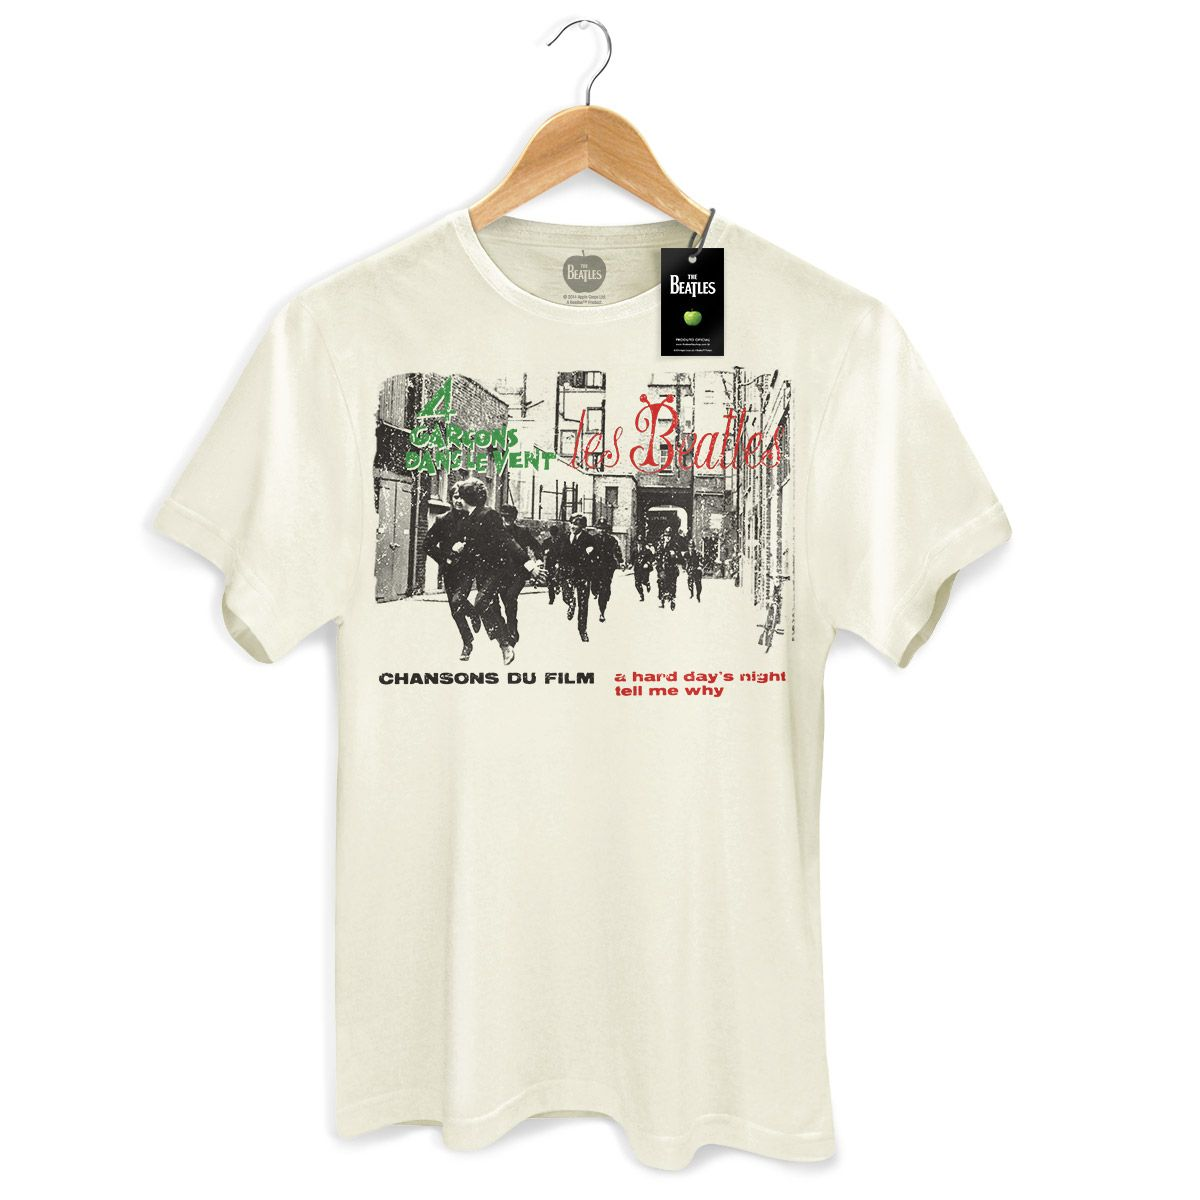 Camiseta Unissex The Beatles - 4 Garçons Dans Le Vent